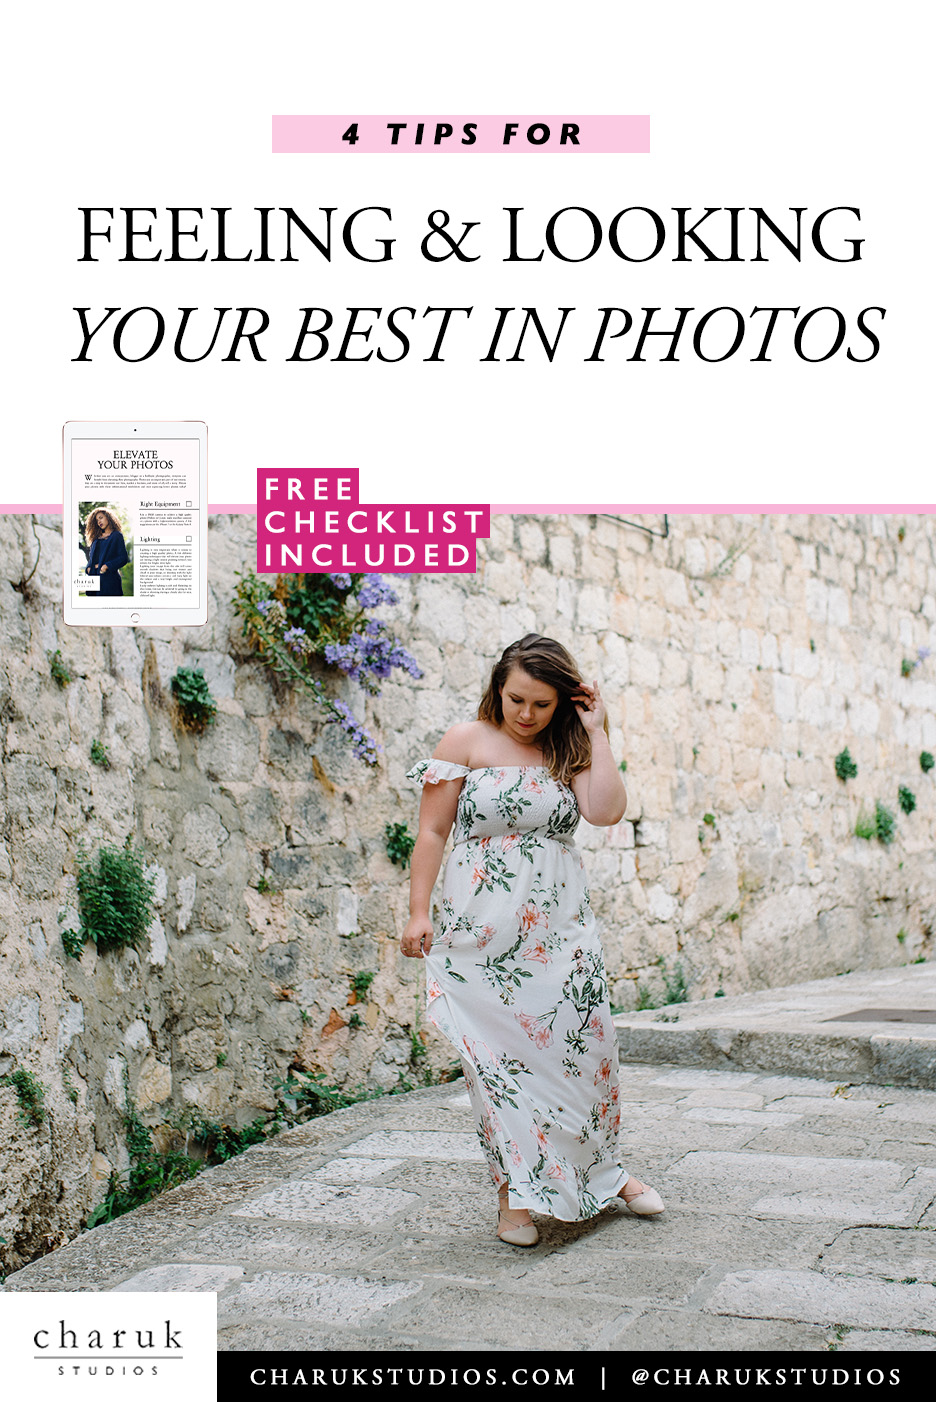 4 Tips for looking and feeling your best in photos by Charuk Studios